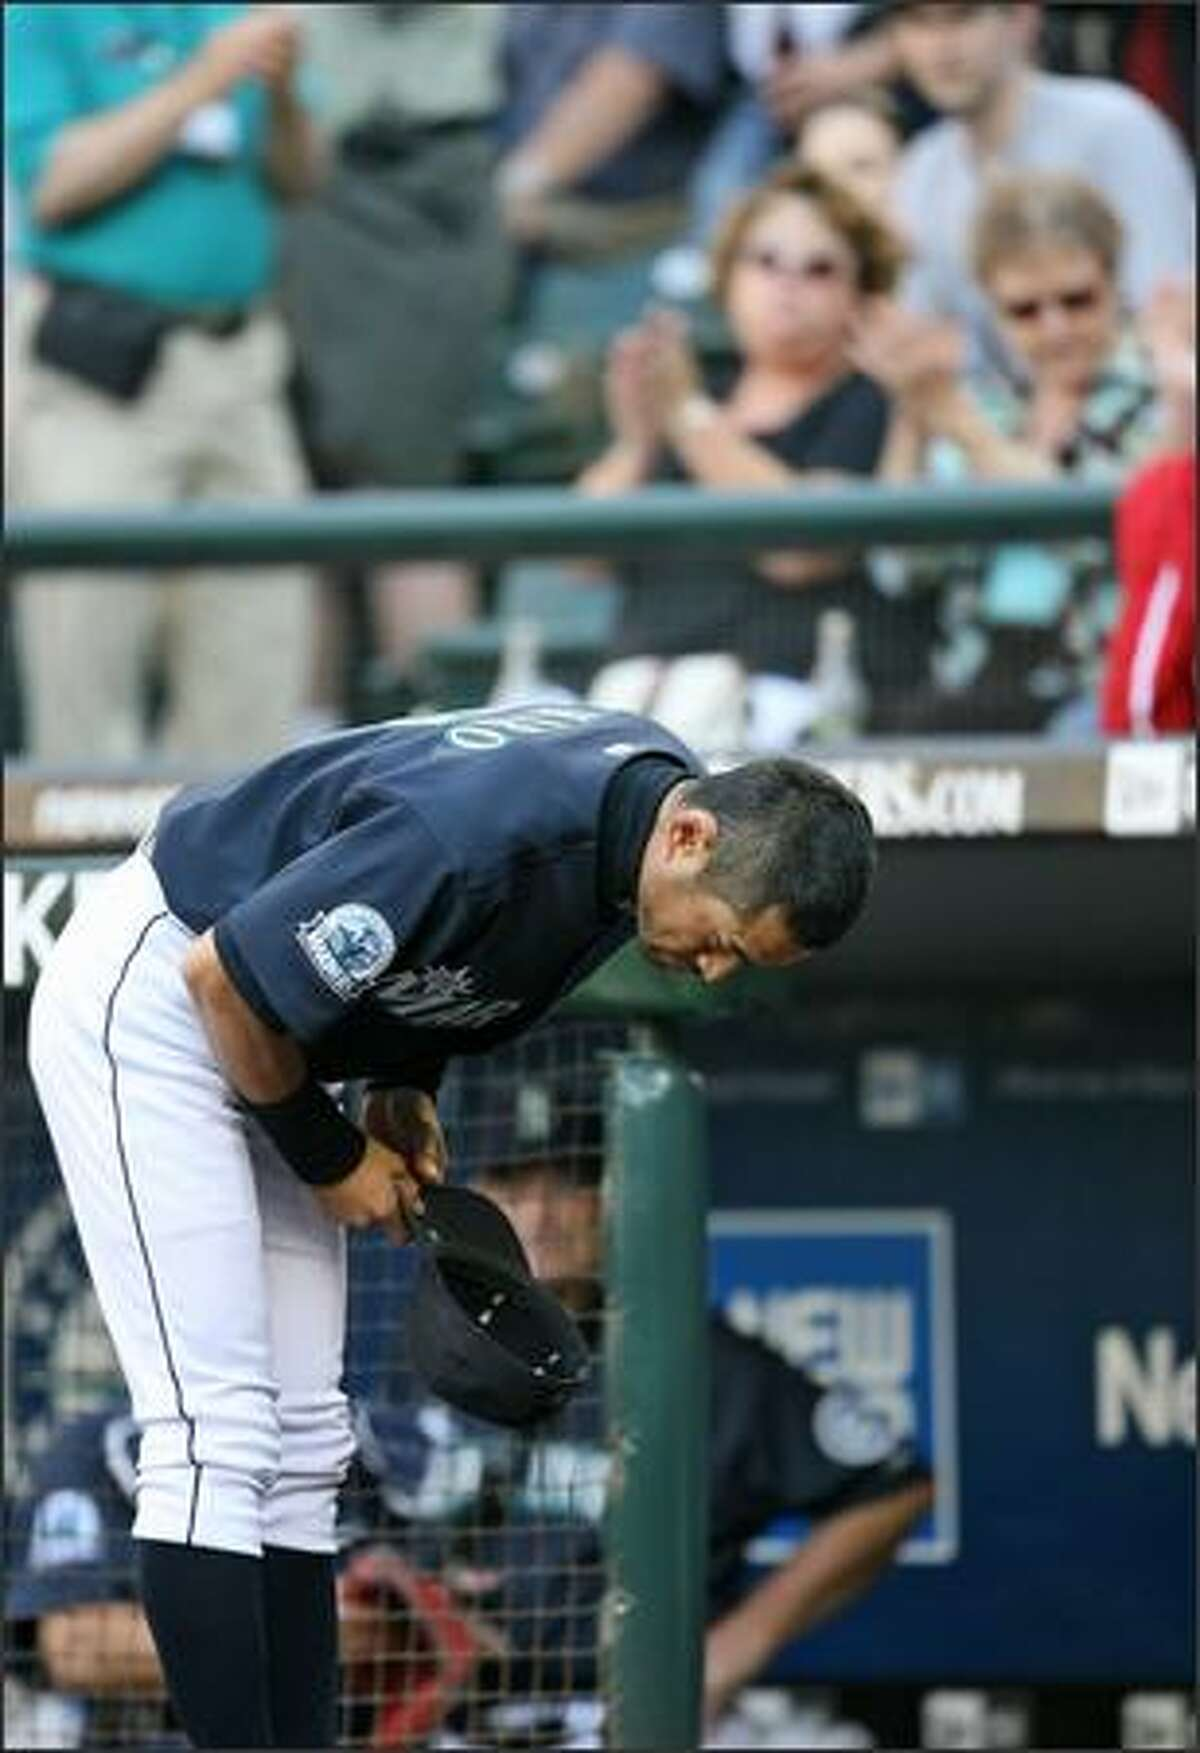 Seattle Mariner Ichiro Suzuki bows to his fans prior to a game against the Detroit Tigers at Safeco Field on Friday. Suzuki signed a five-year contract extension worth an estimated $100 million.